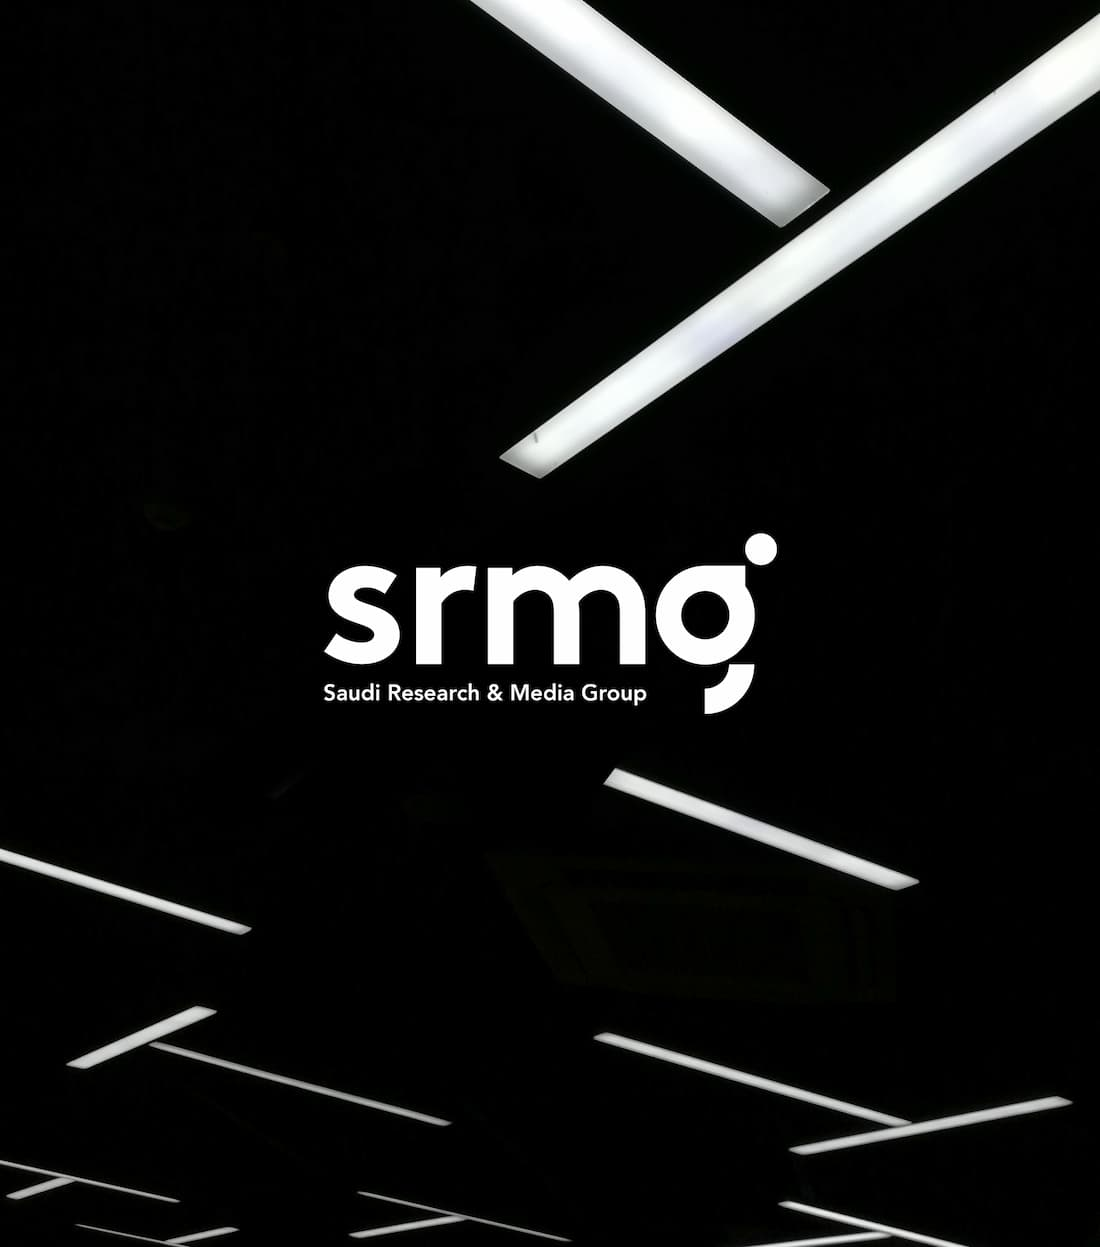 SRMG announces board and chairman appointments.